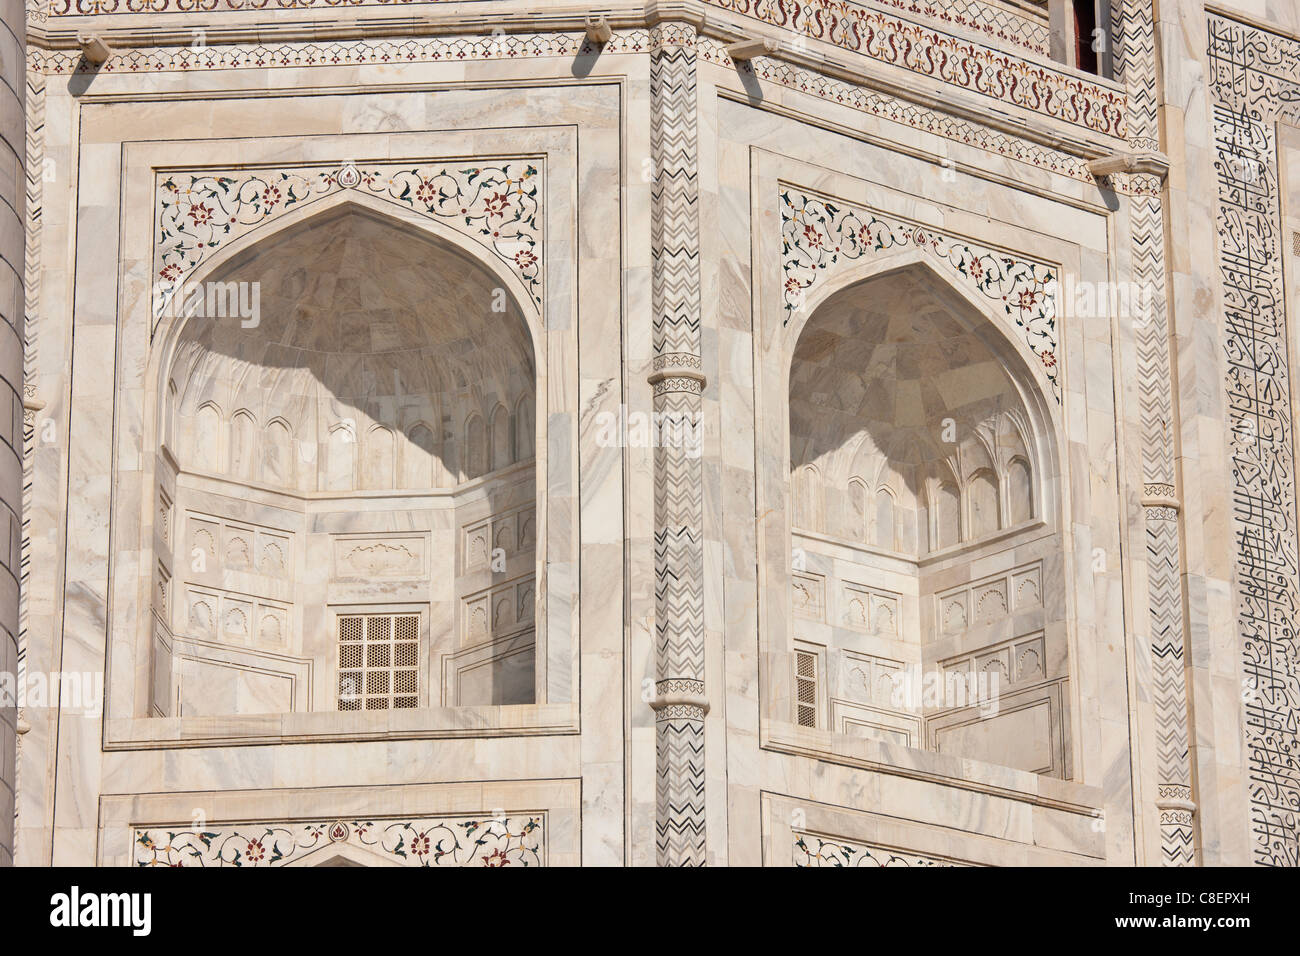 The Taj Mahal mausoleum, southern view detail, Uttar Pradesh, India - Stock Image